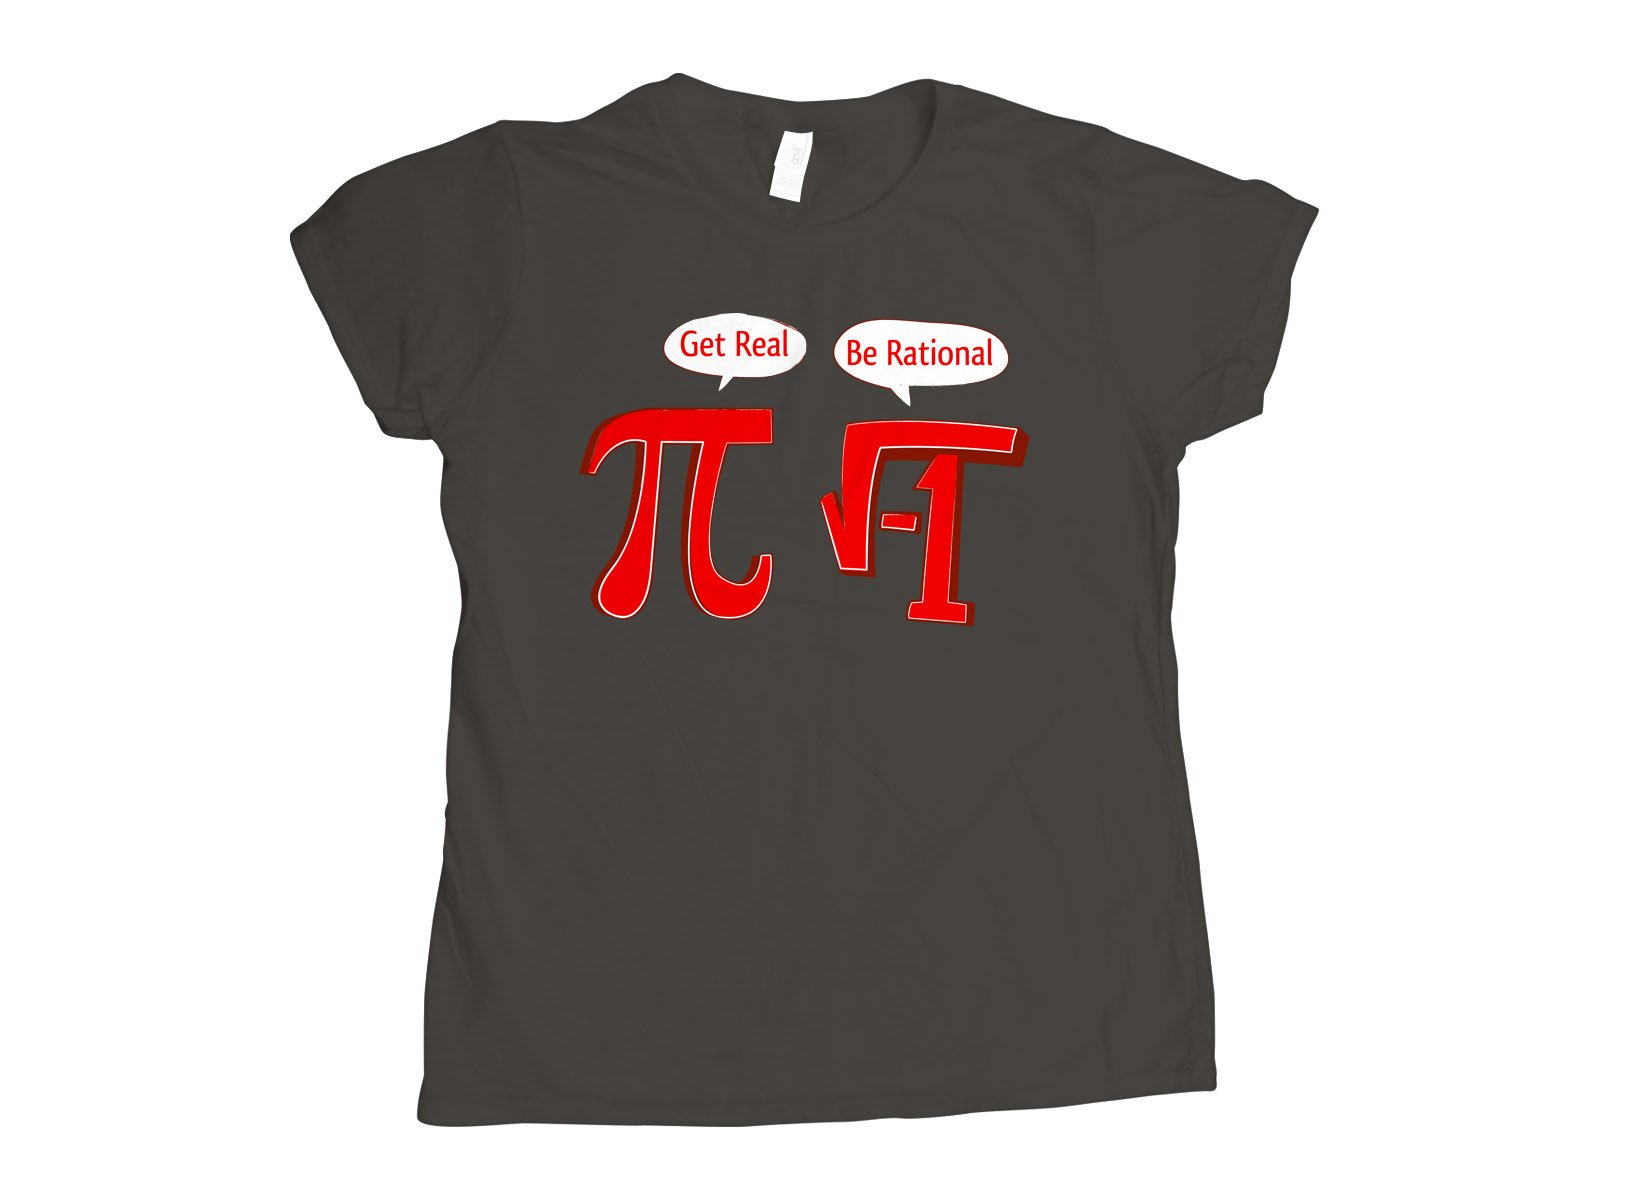 Pi Be Rational on Womens T-Shirt